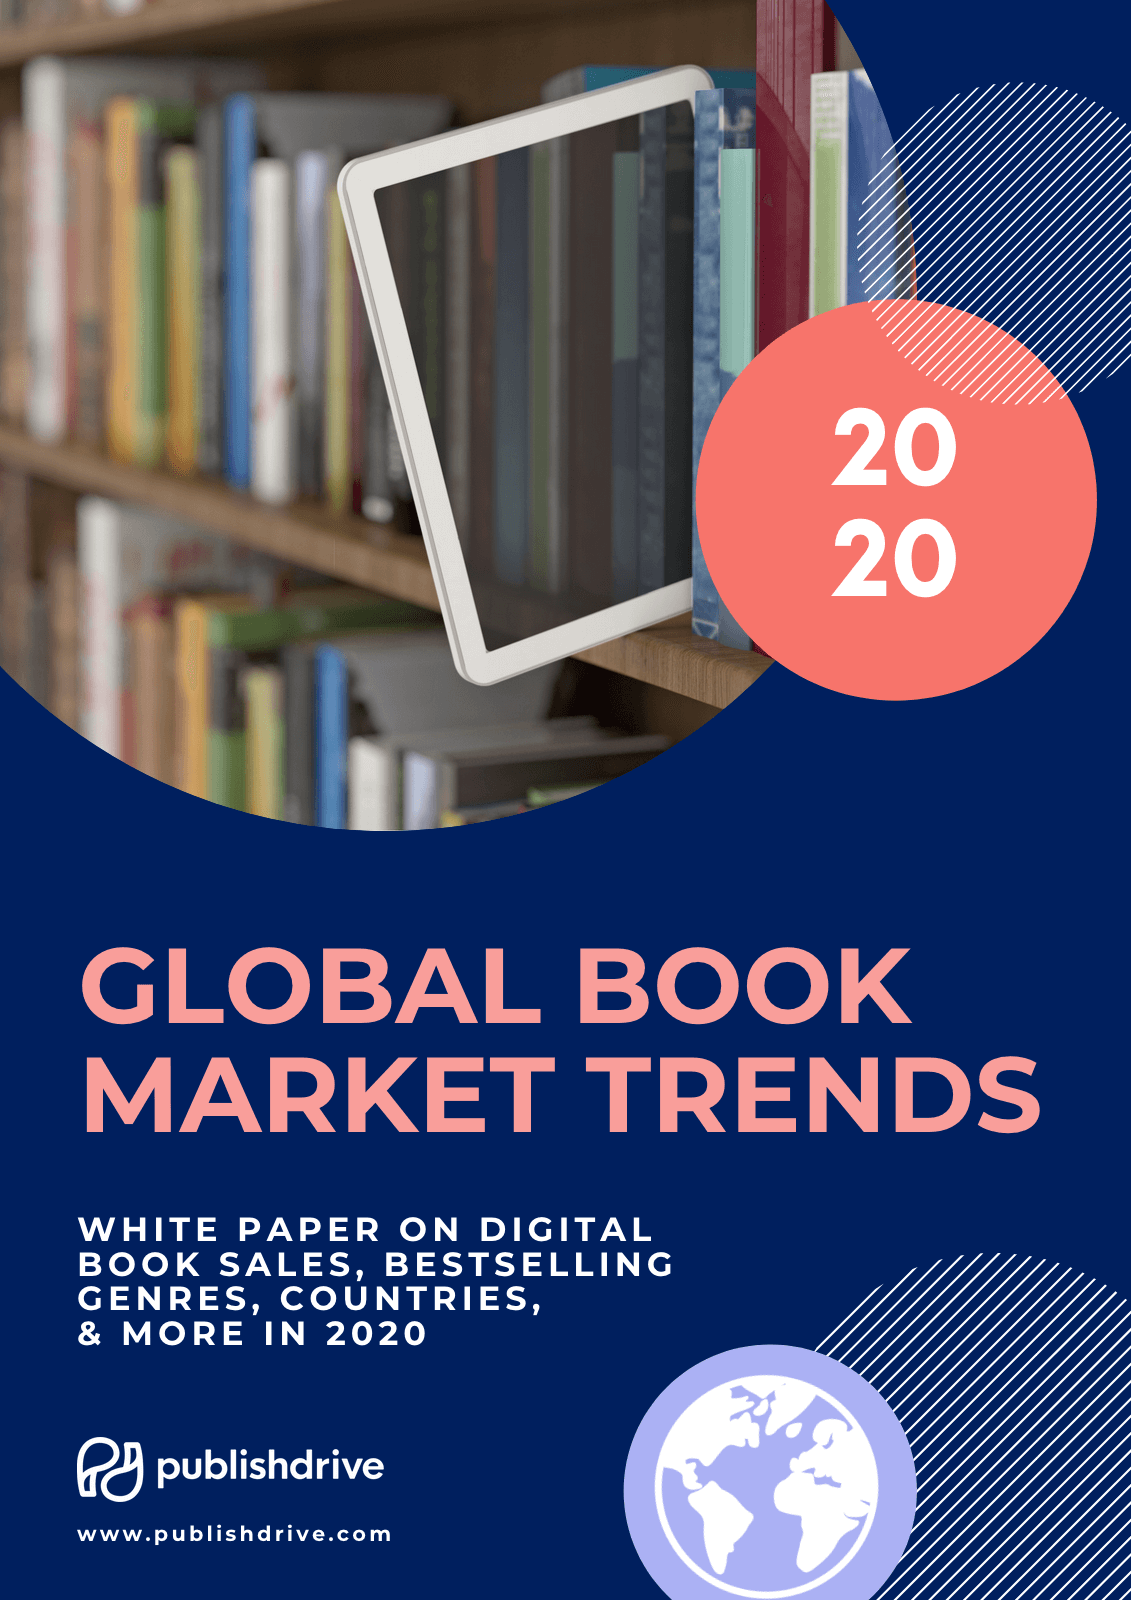 PublishDrive global book market trends white paper free download